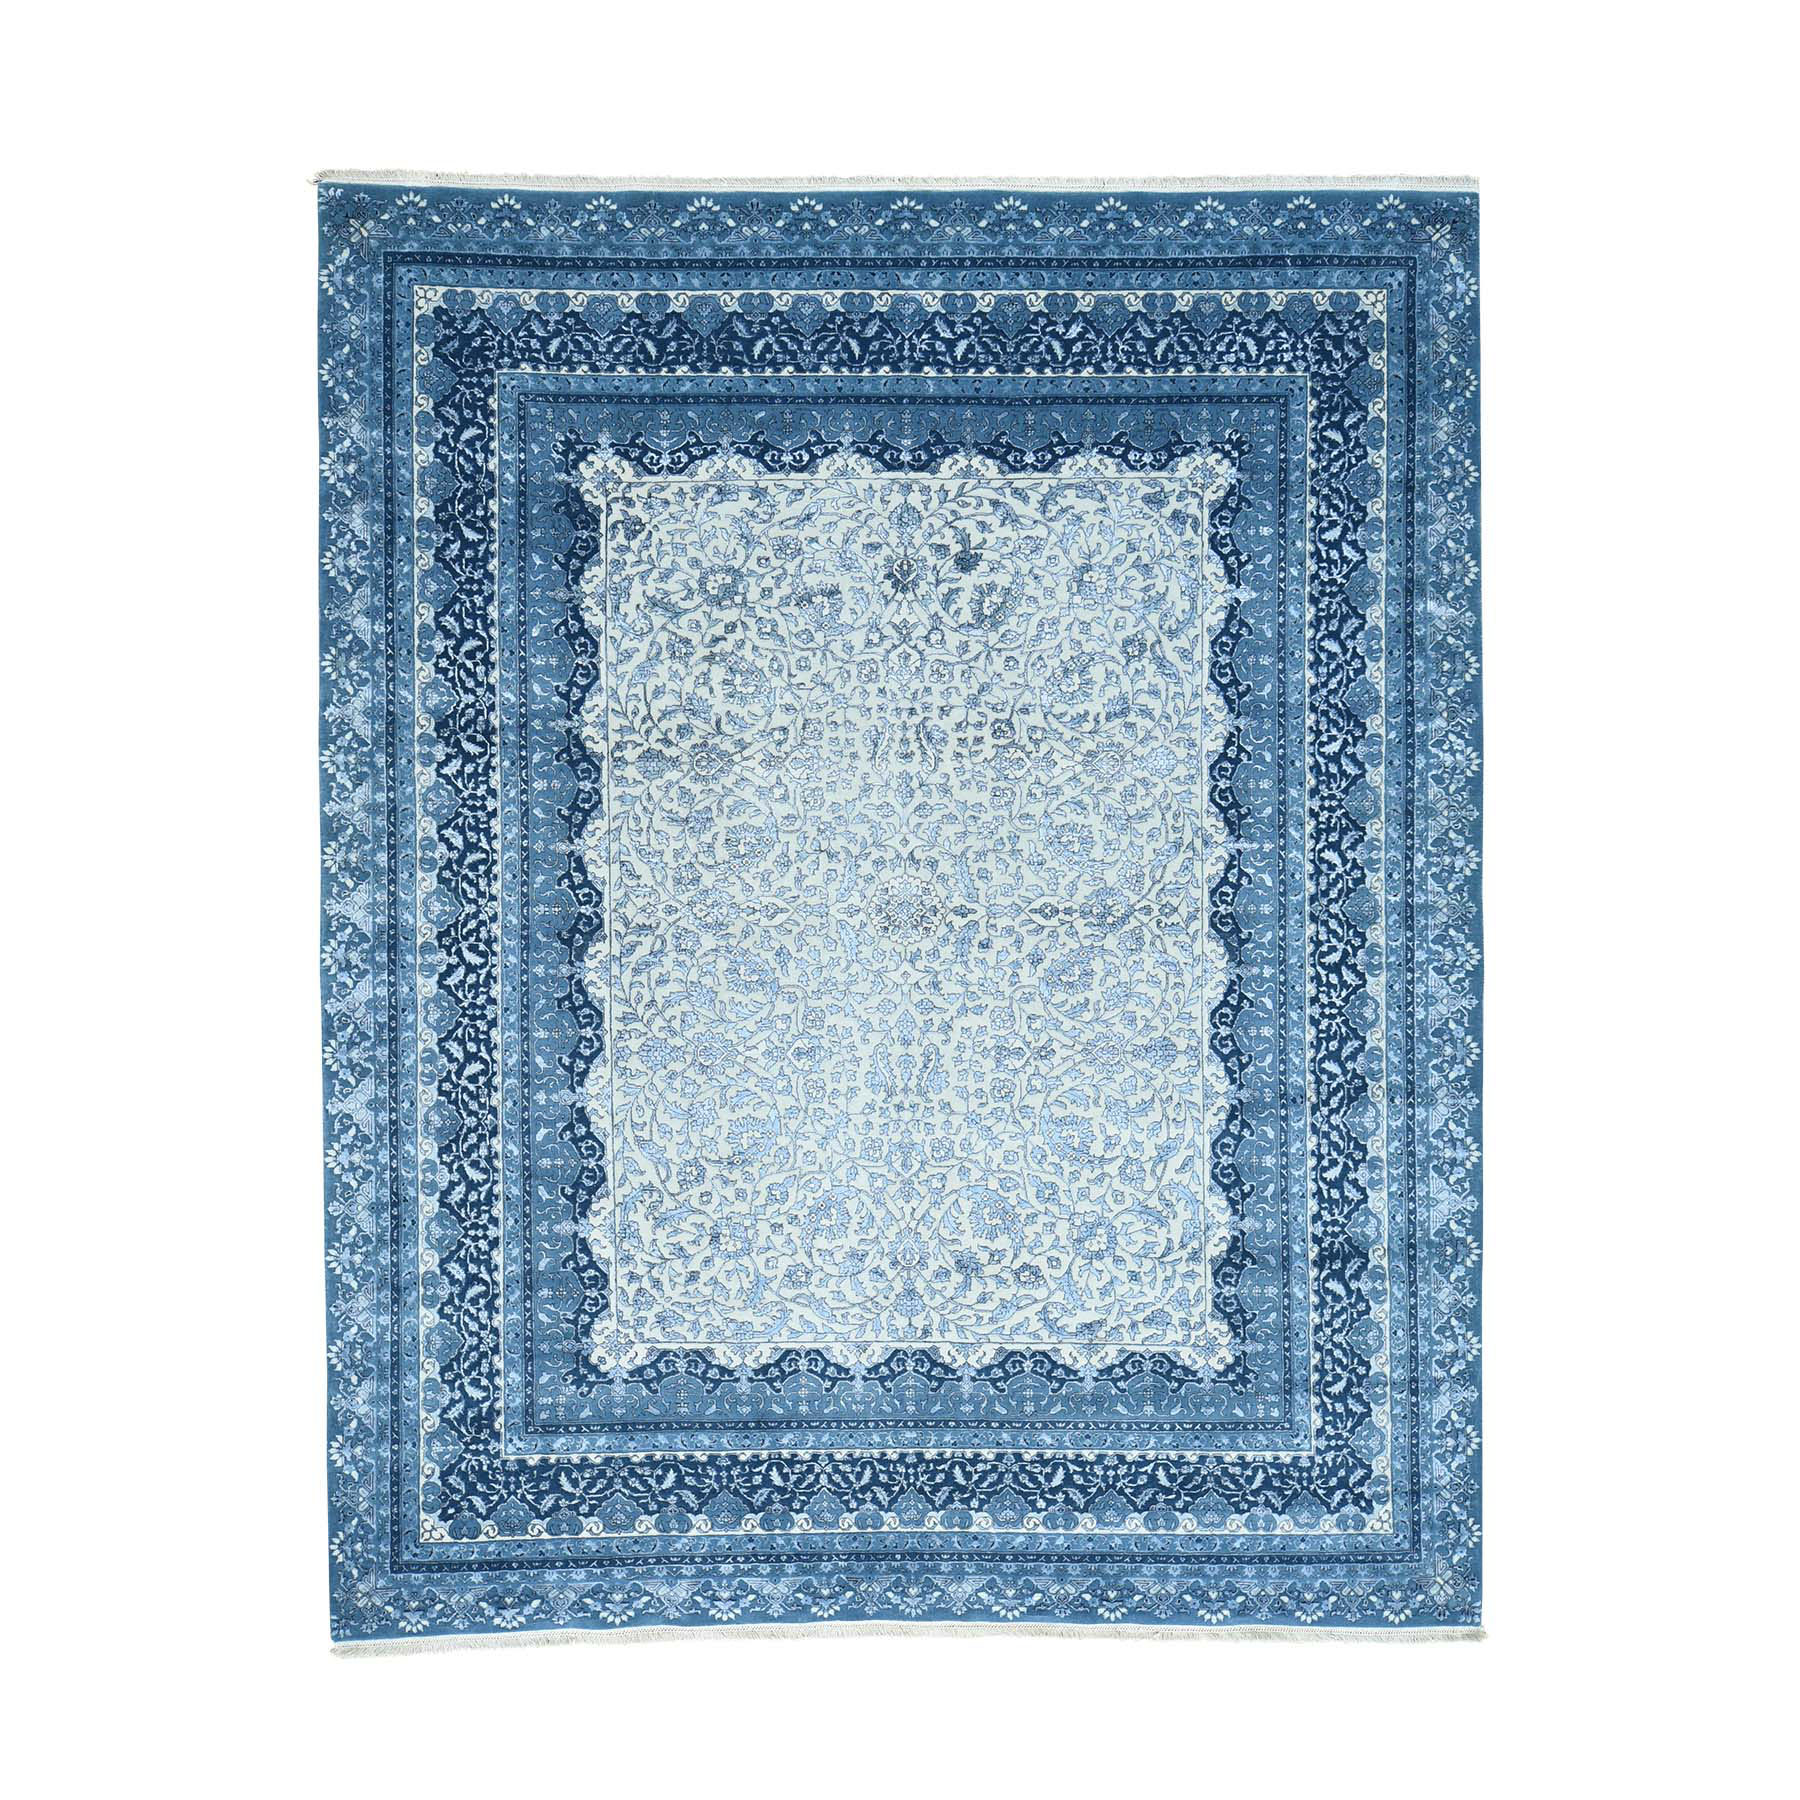 Pirniakan Collection Hand Knotted Ivory Rug No: 0165134